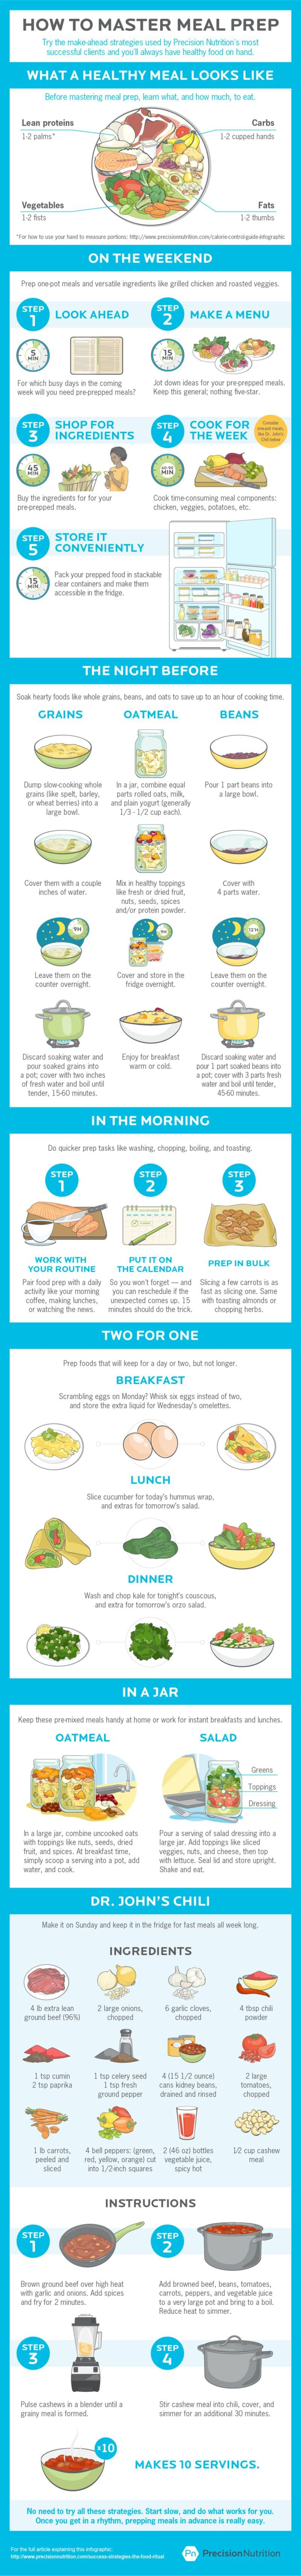 Precision Nutrition Meal Plan Template Here S How to Master Your Weekly Meal Prep